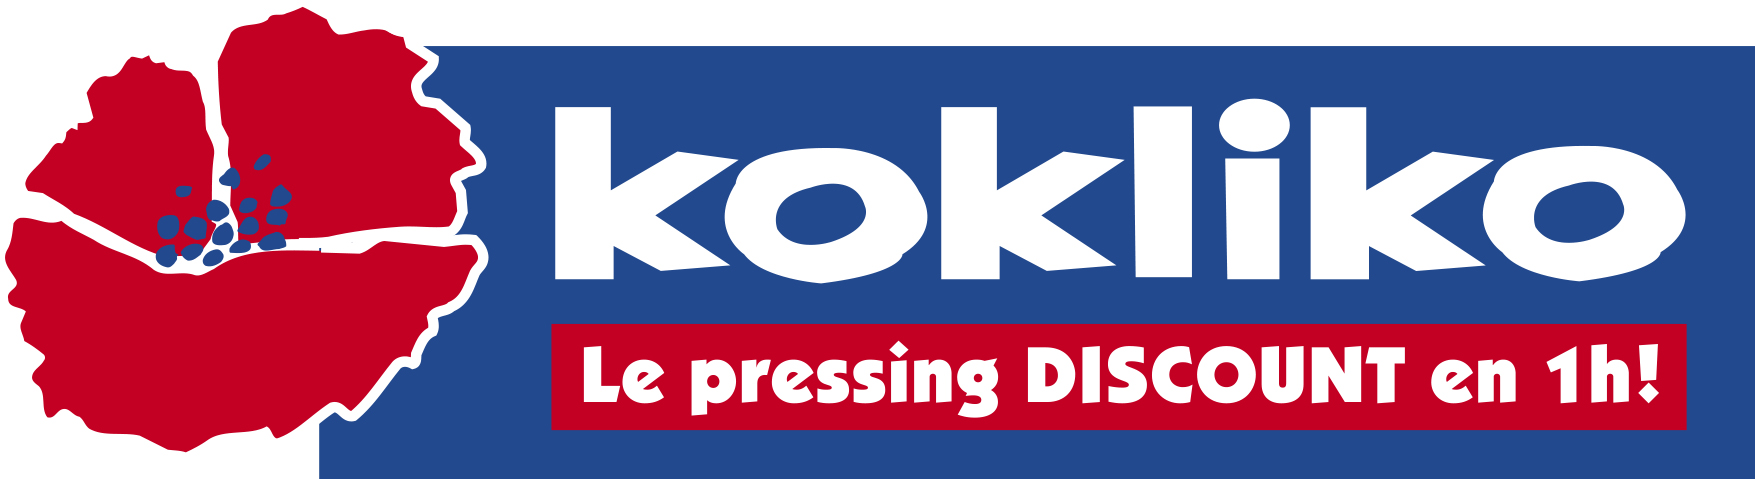 Kokliko : pressing simple, rapide et efficace